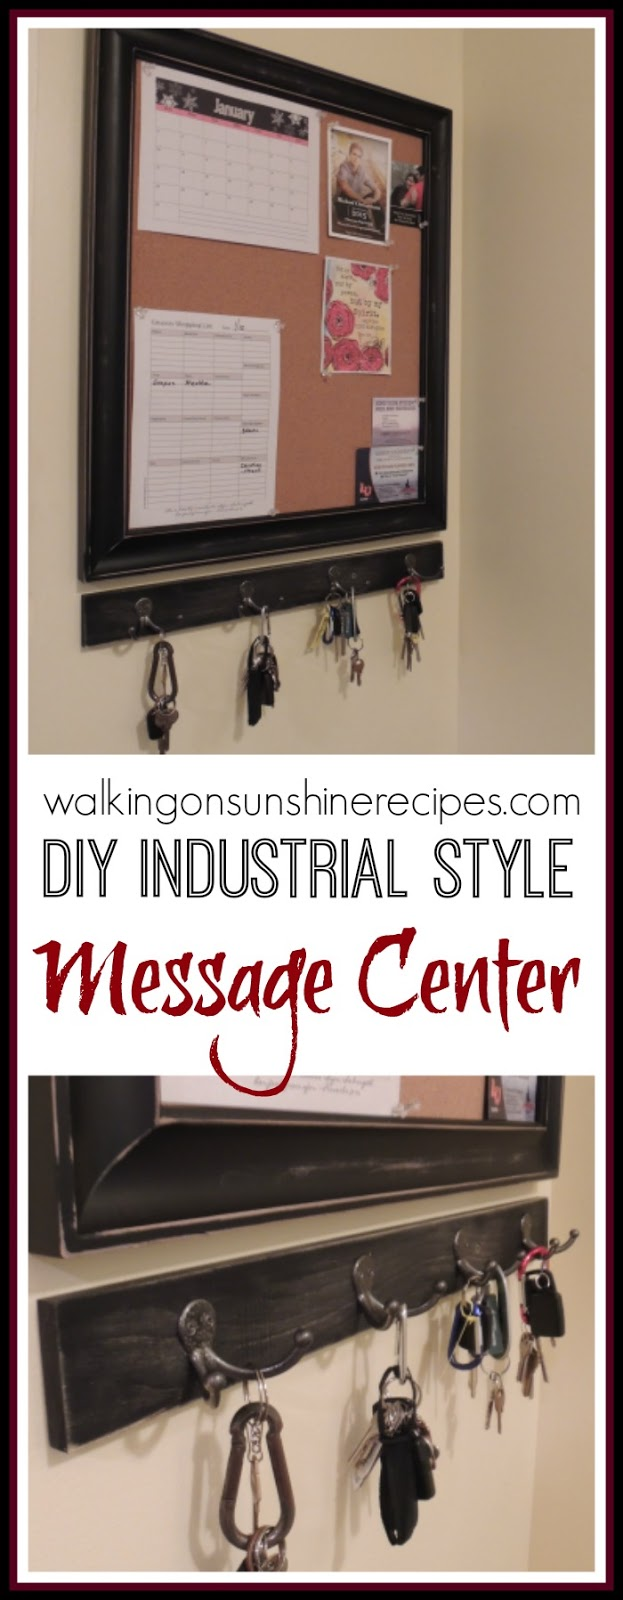 Creat your own DIY Industrial Style Message Center from Walking on Sunshine.